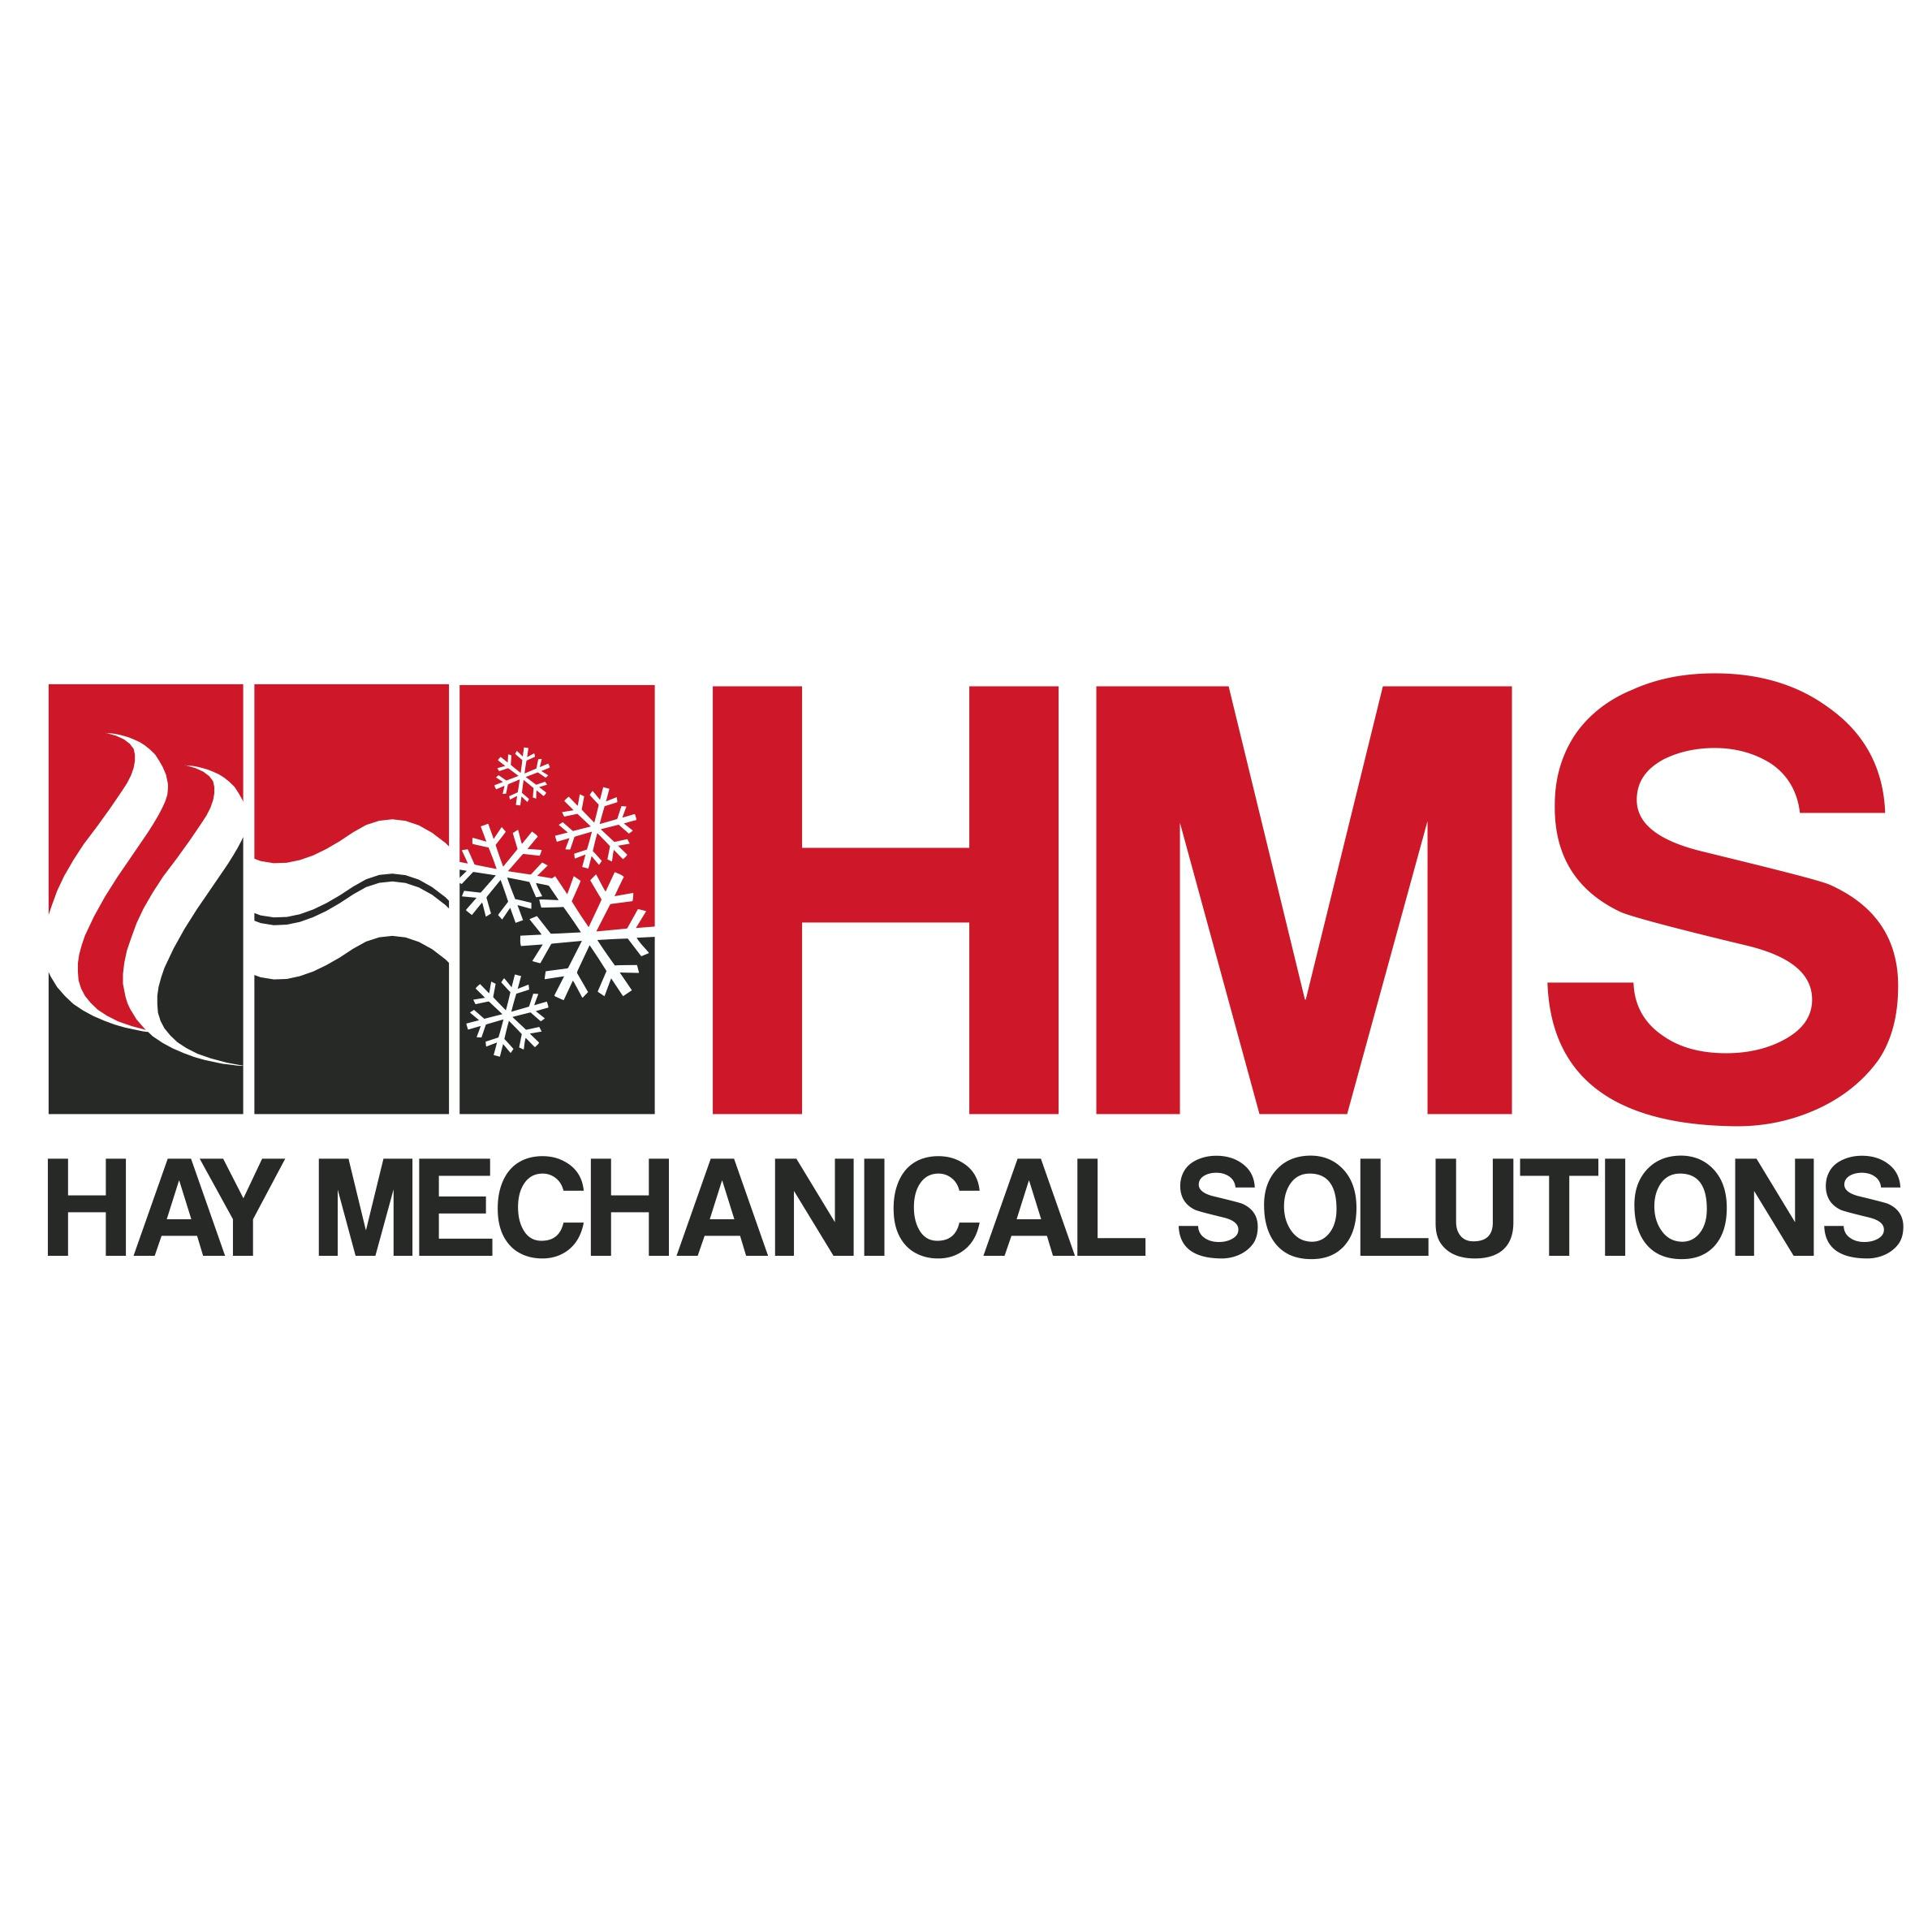 Hay Mechanical Solutions Corporation